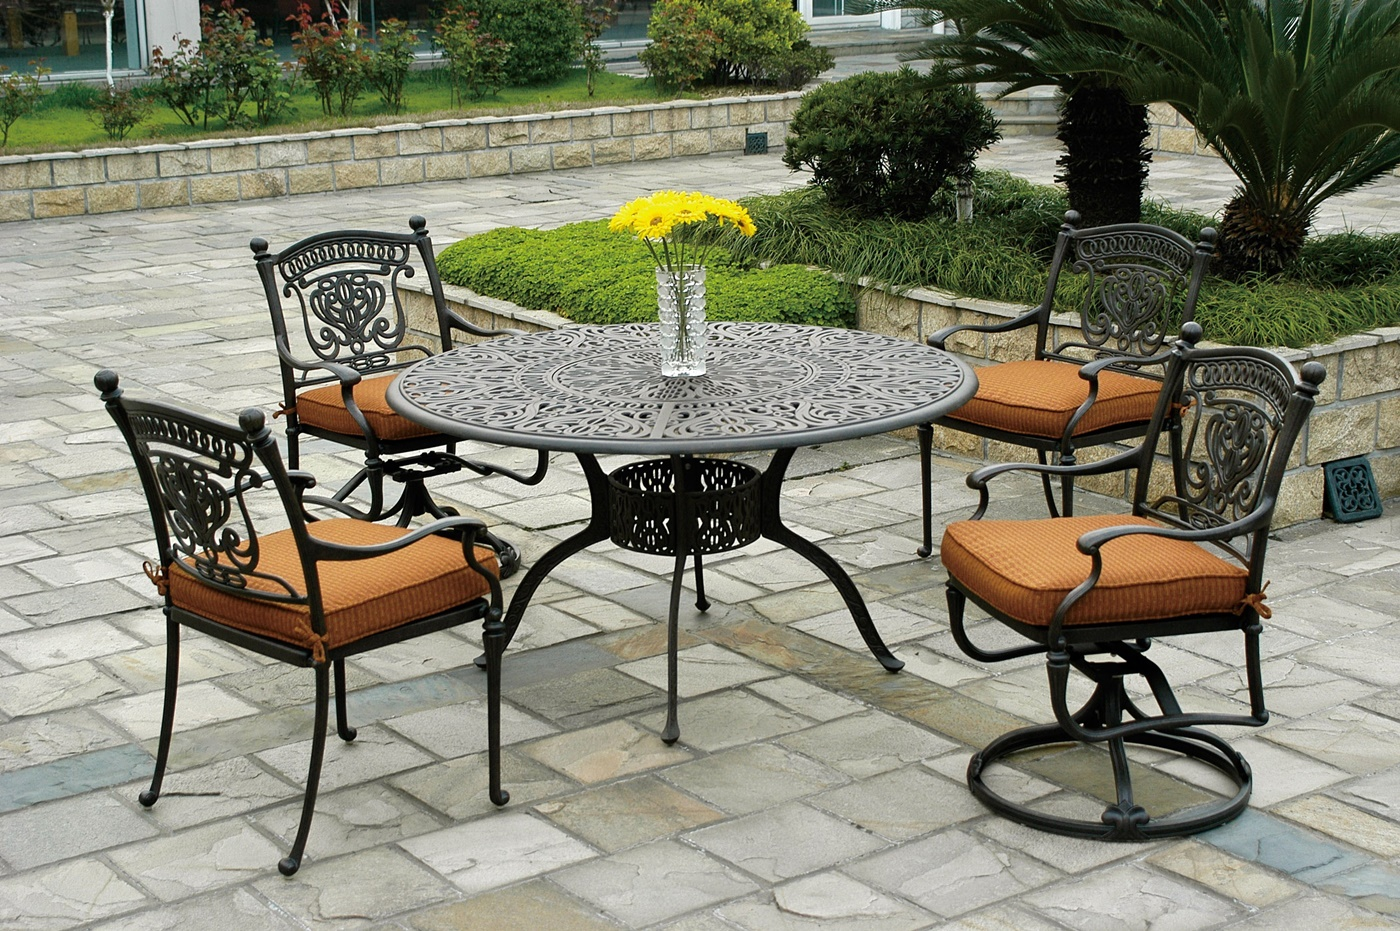 black wrought iron patio furniture. black wrought iron chairs with orange plush cushions and large round table patio furniture